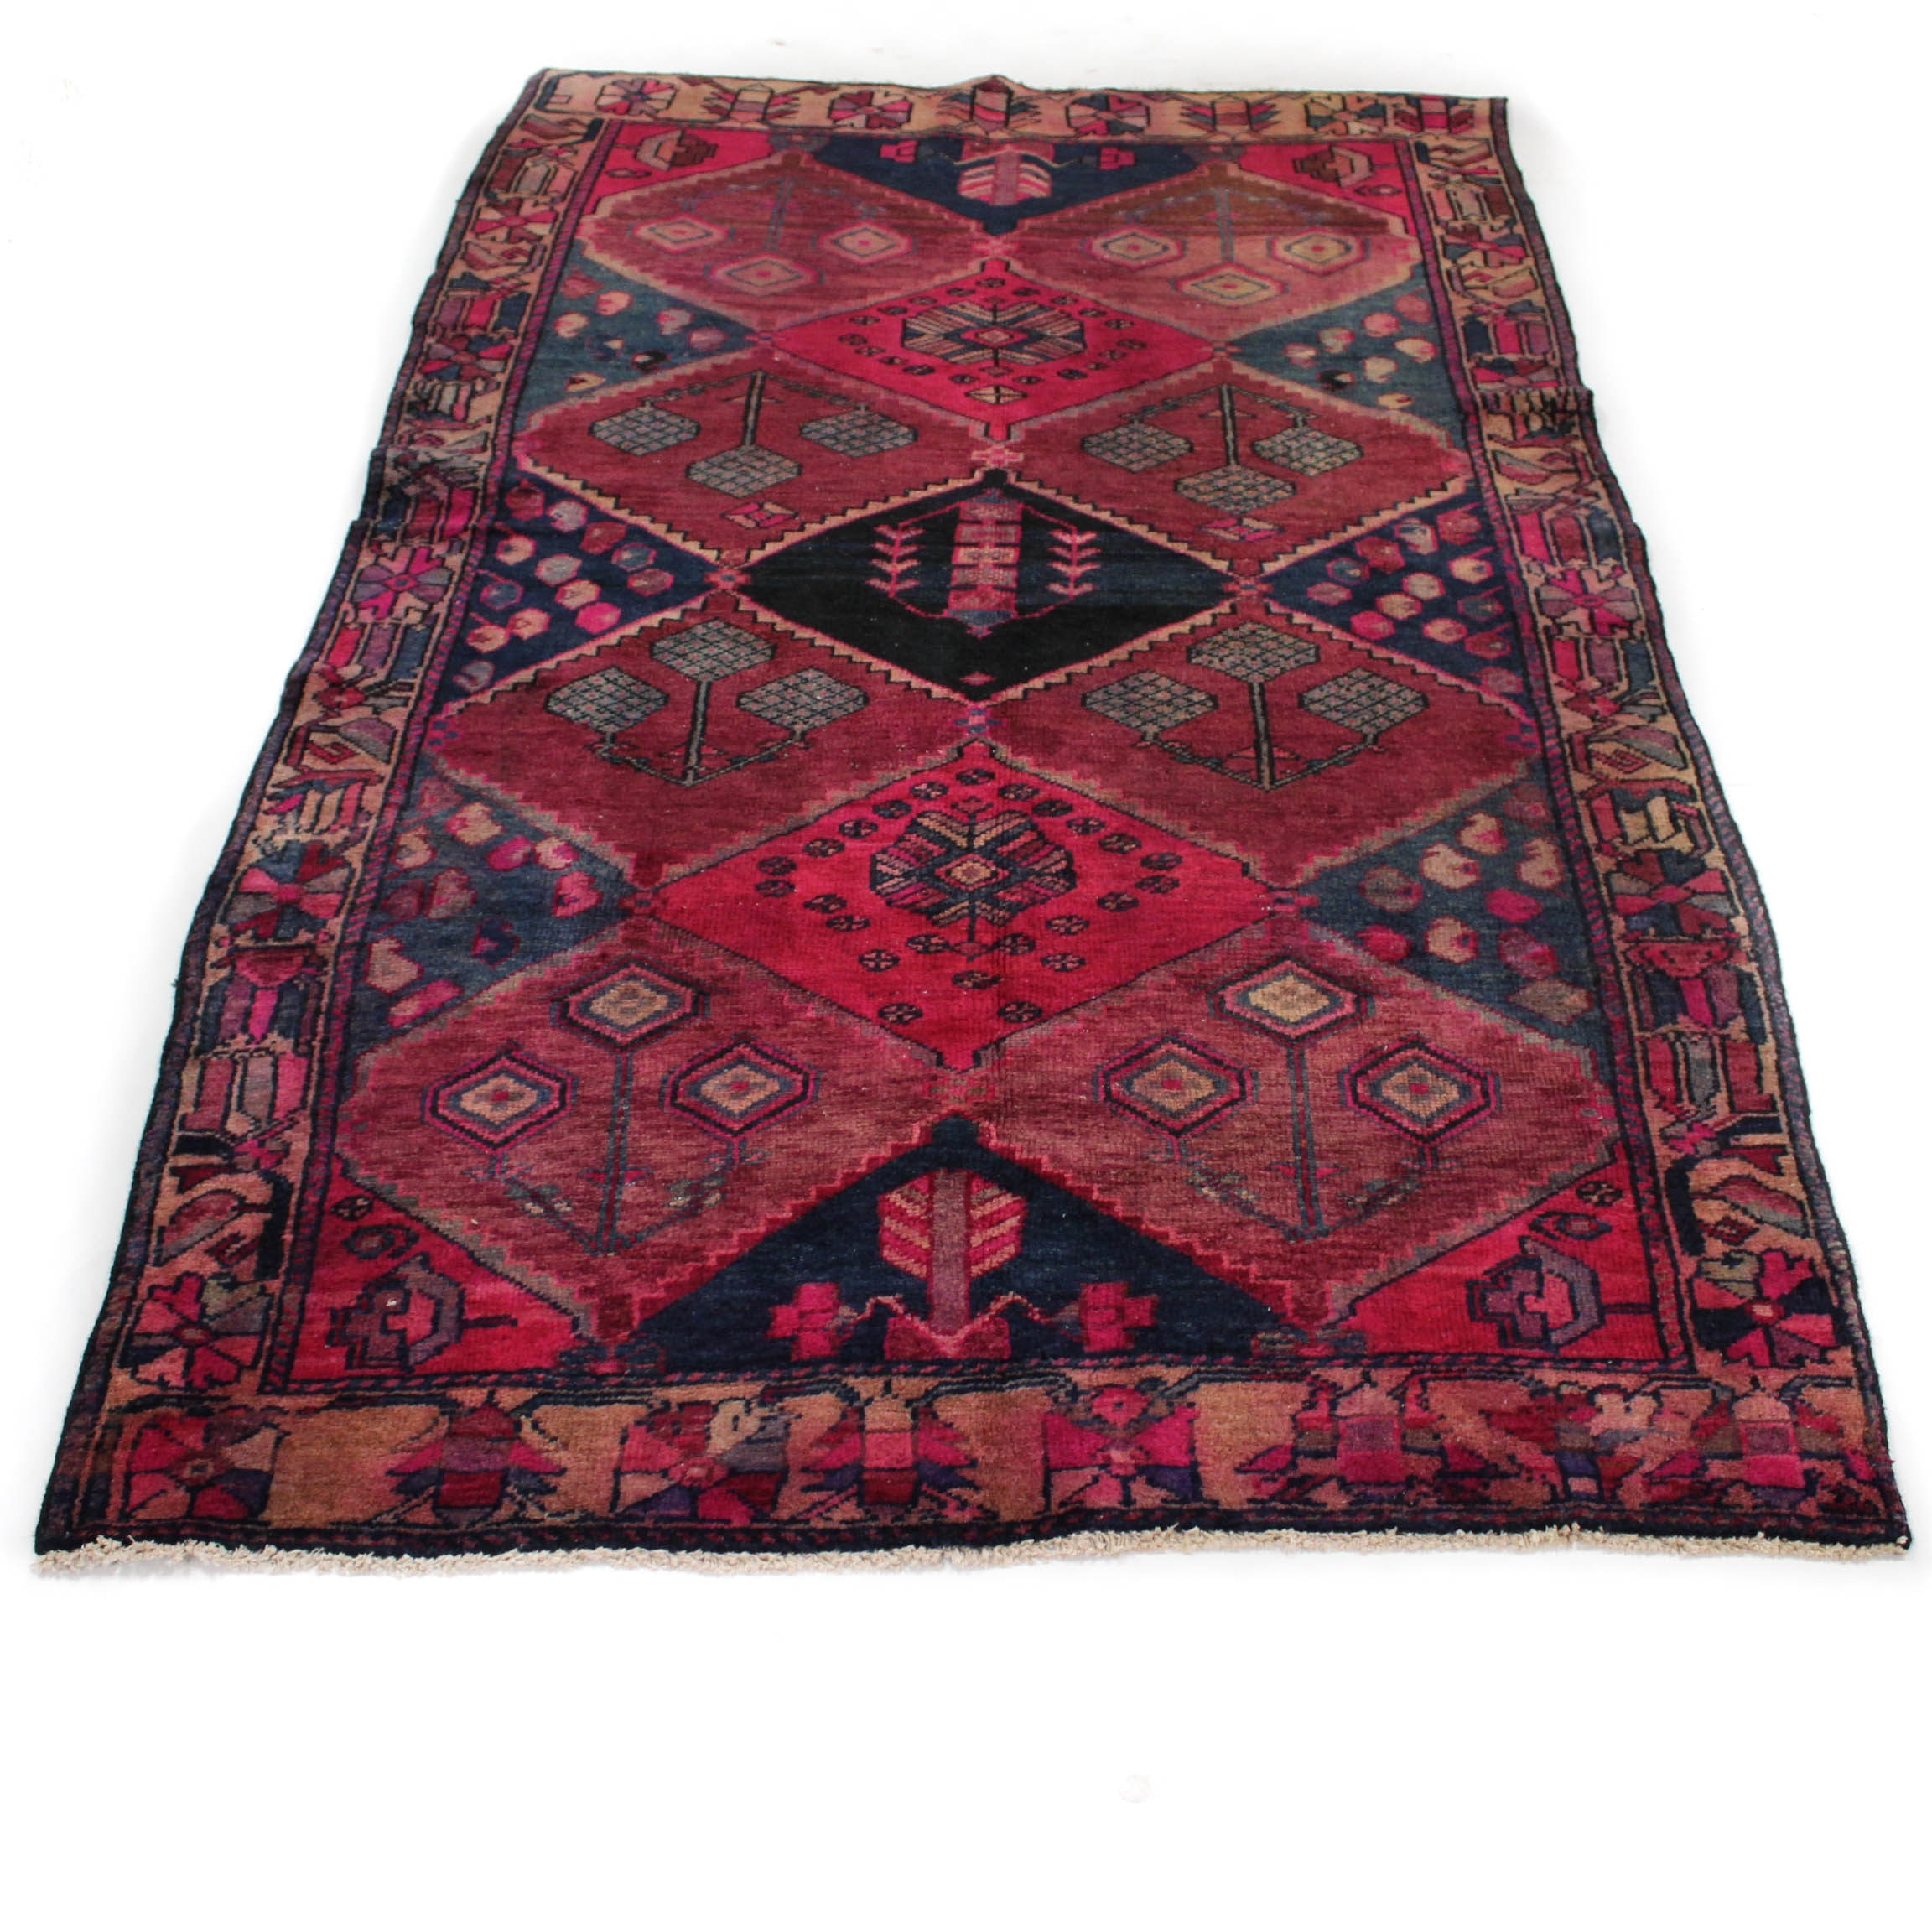 Vintage Hand-Knotted Persian Bakhtiari Area Rug